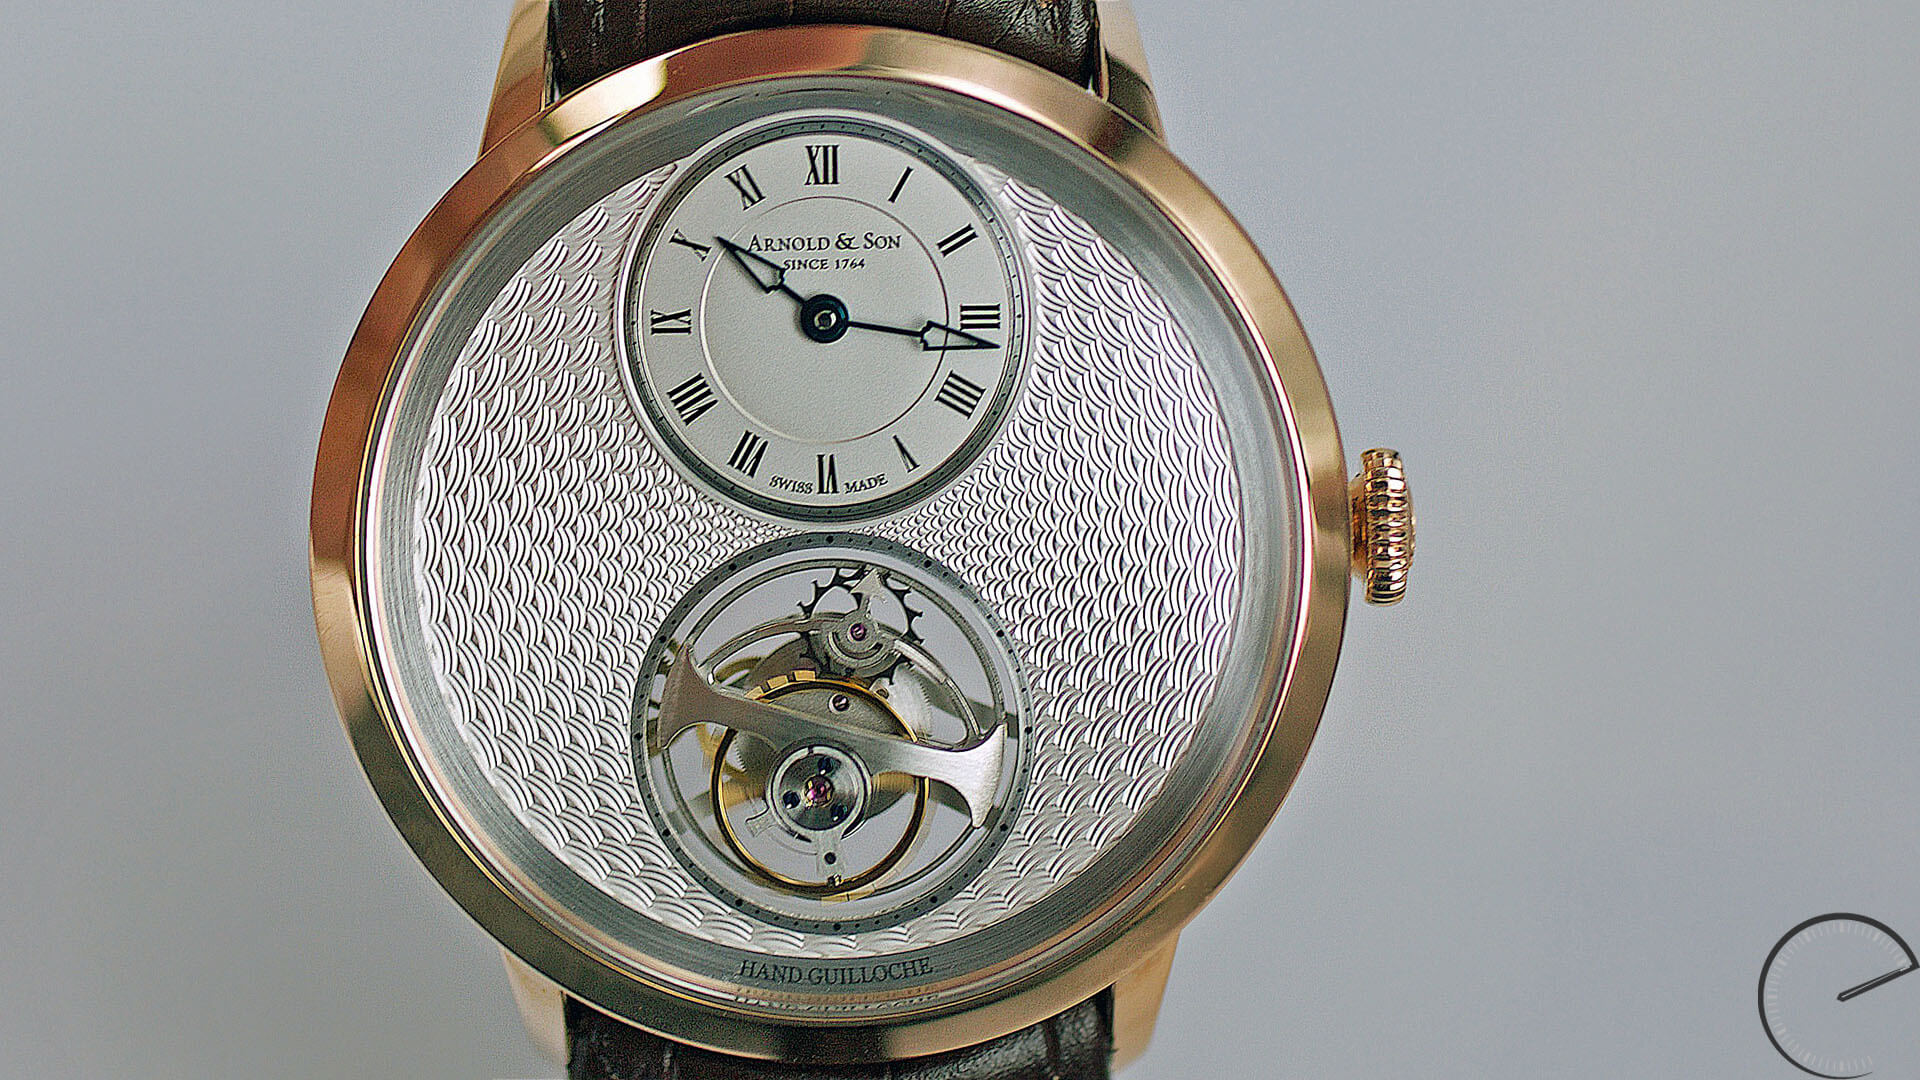 Image of Arnold & Son UTTE with guilloche dial